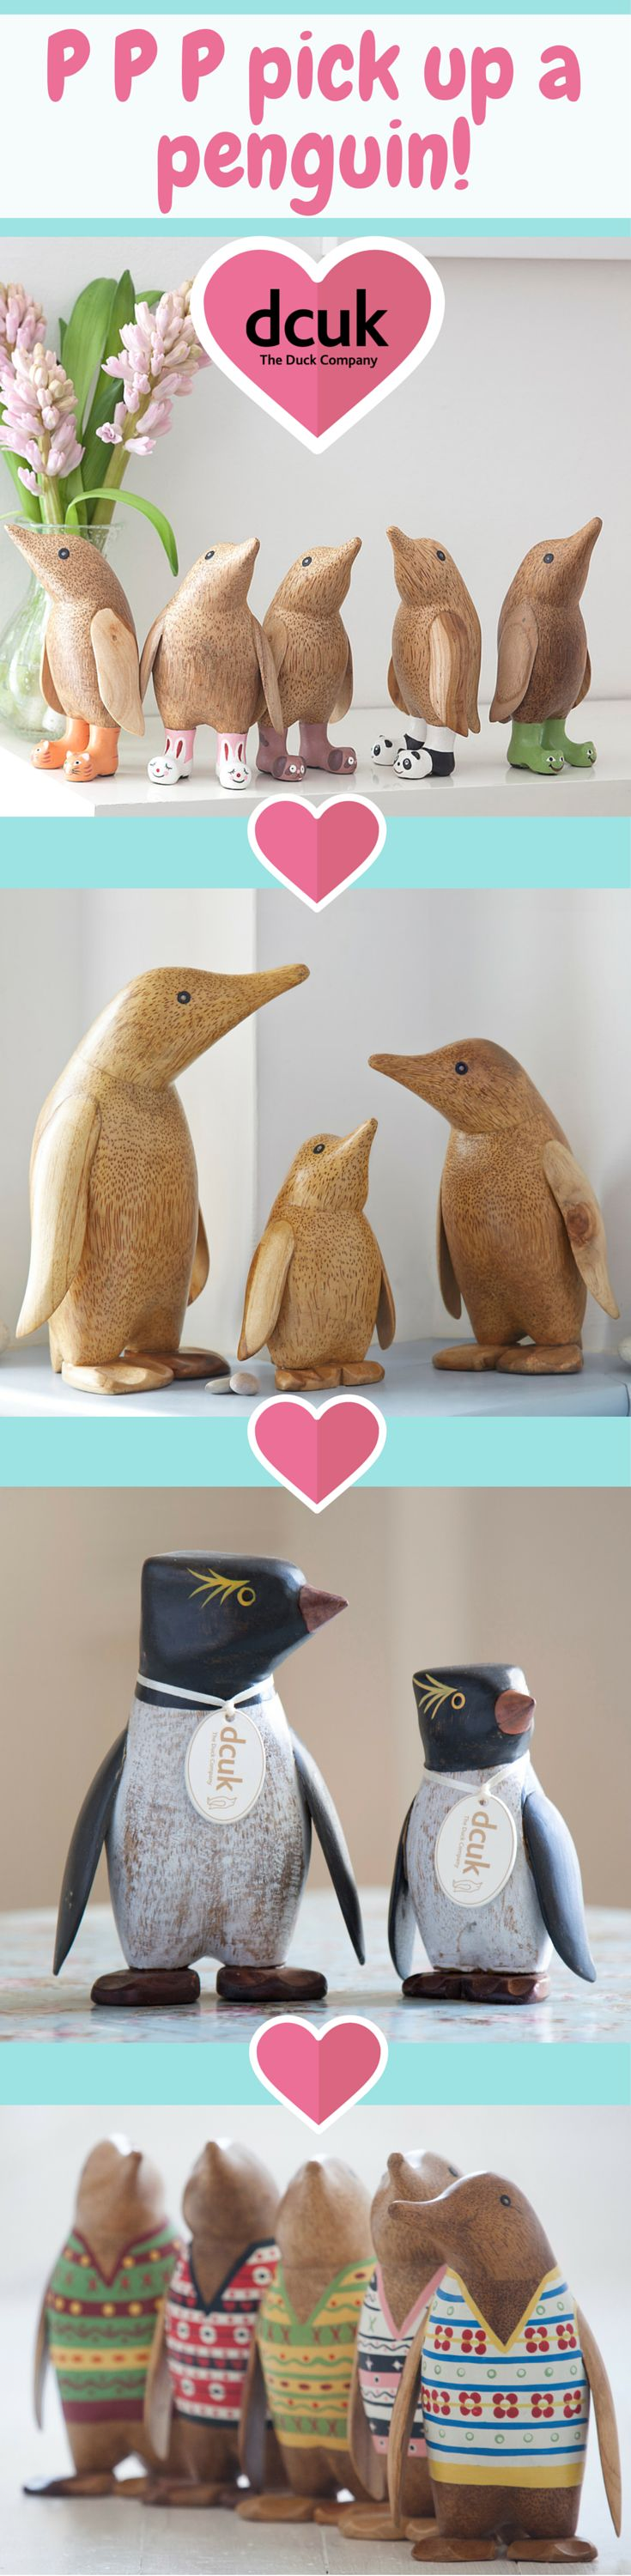 80 best gift ideas for her images on pinterest the duck penguin p p p pick up the perfect penguin gift or home decor accessory from the duck company negle Image collections